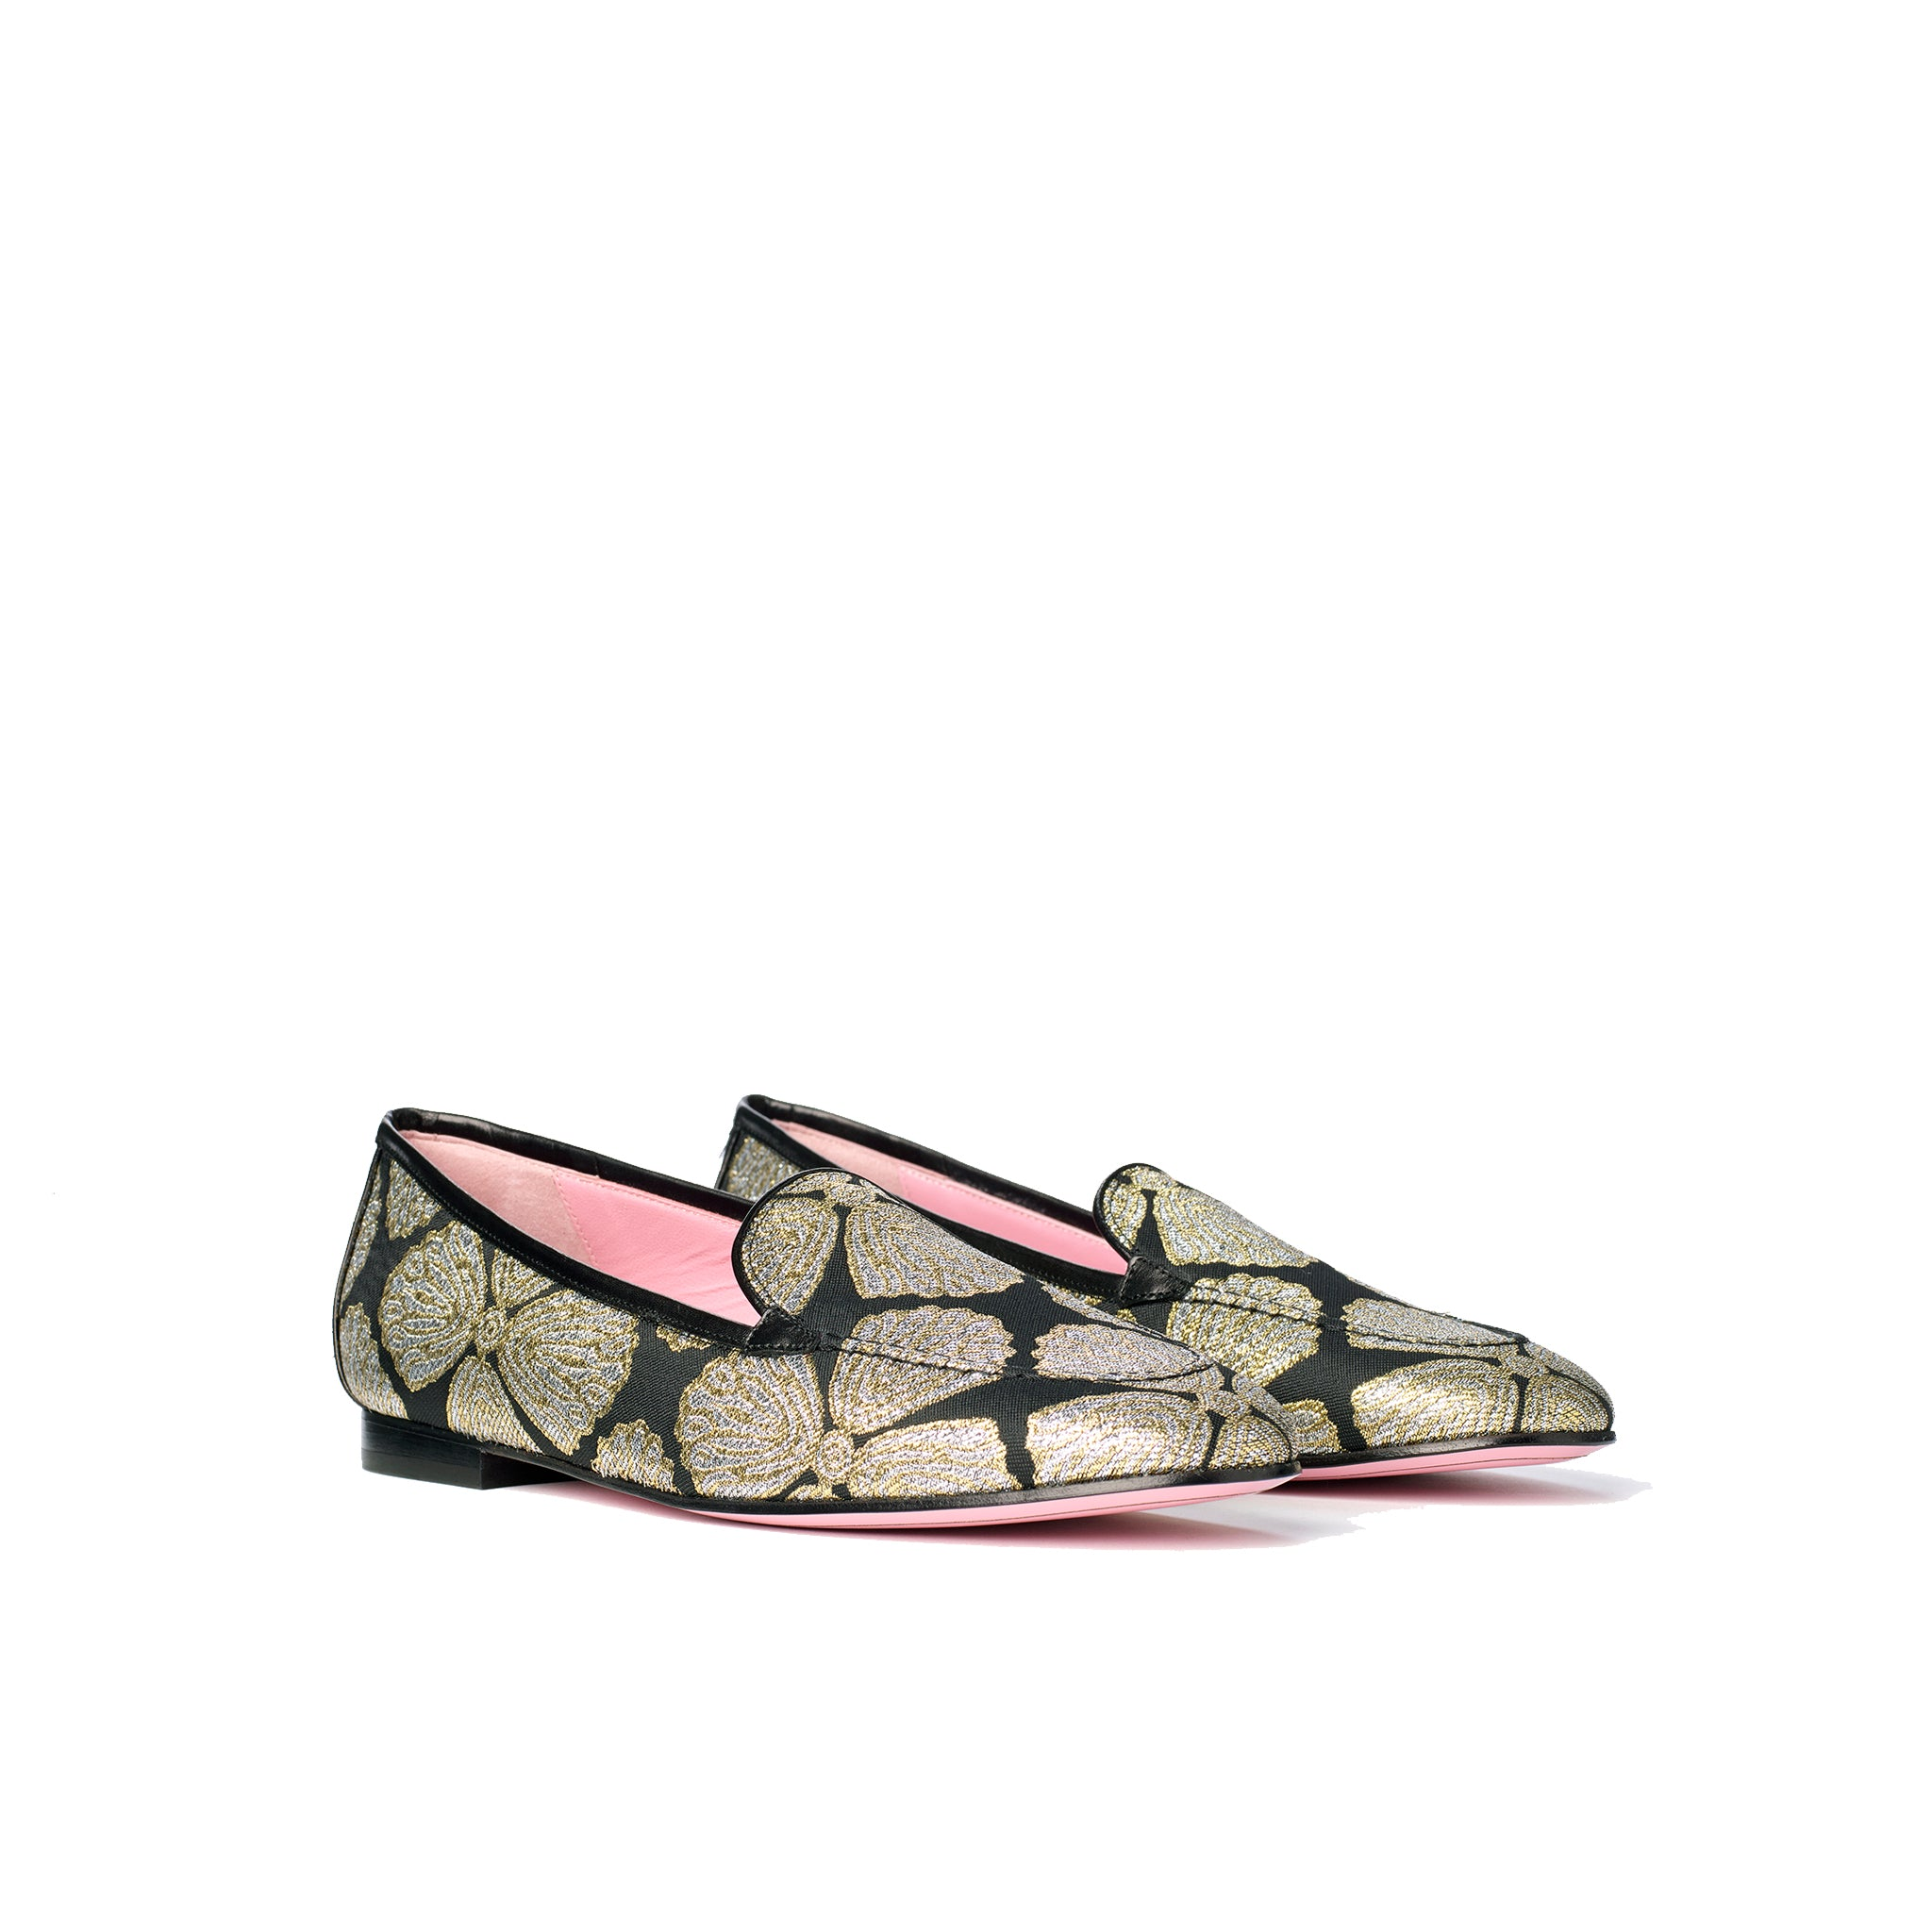 Phare classic loafer in metallic brocade 3/4 view